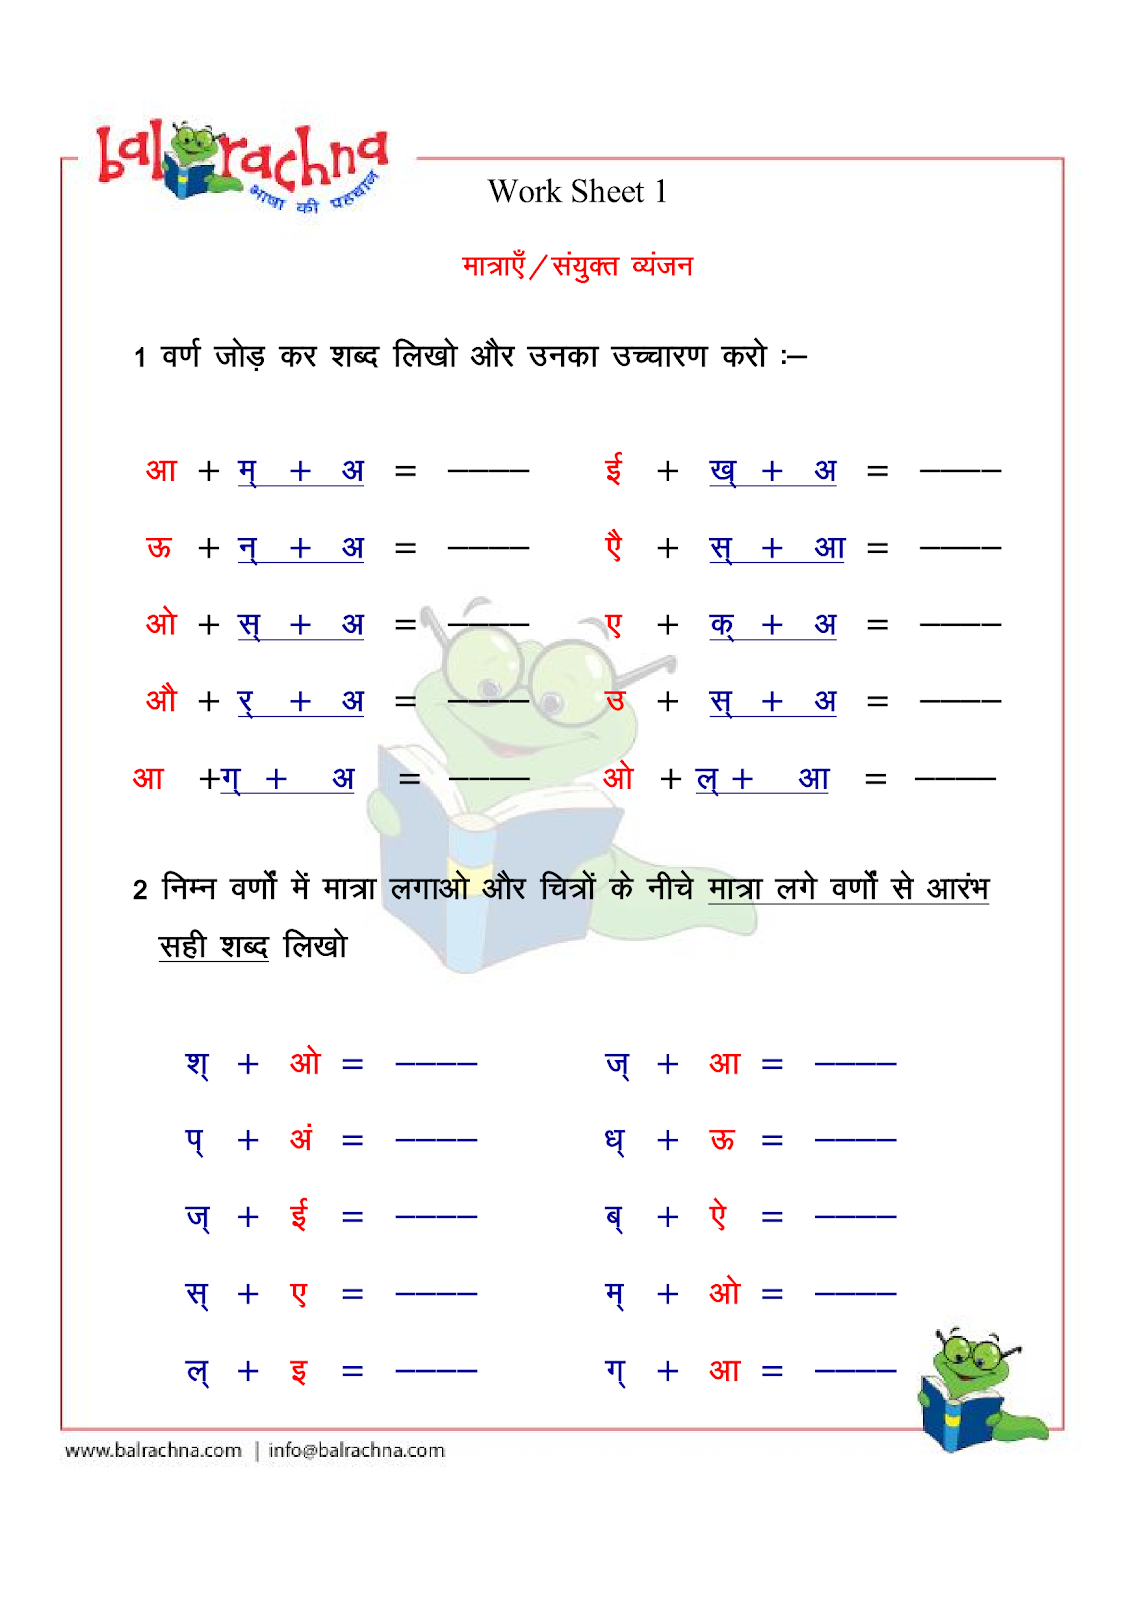 Worksheet For Class 1 Hindi Matra